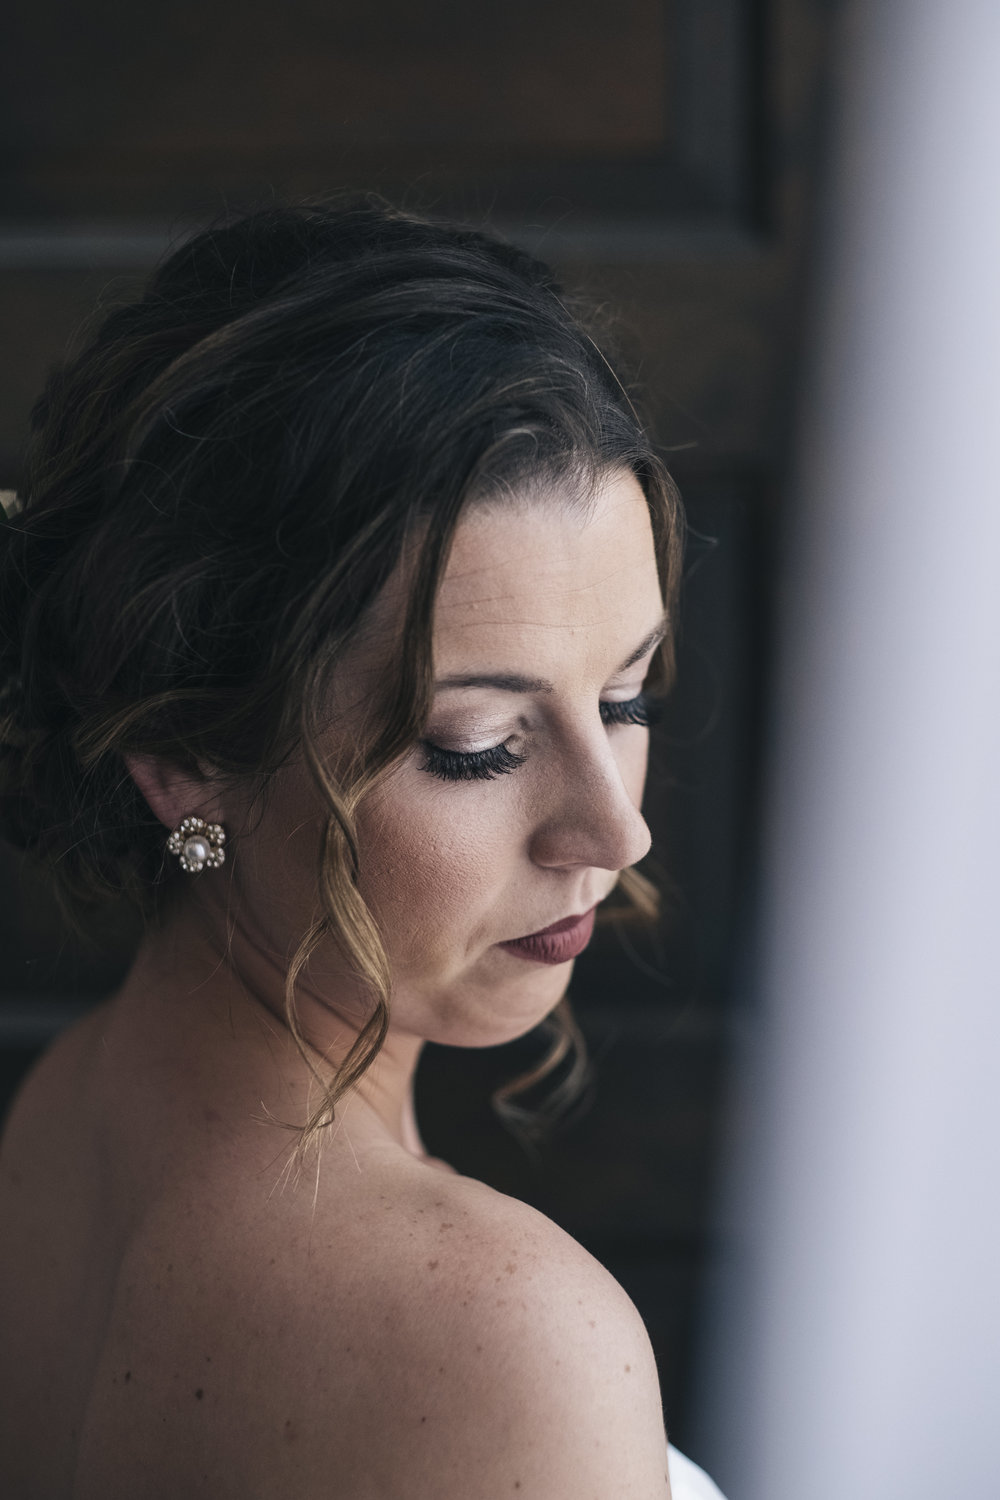 Portrait of the bride before her wedding at Nazareth Hall near Toledo, Ohio.